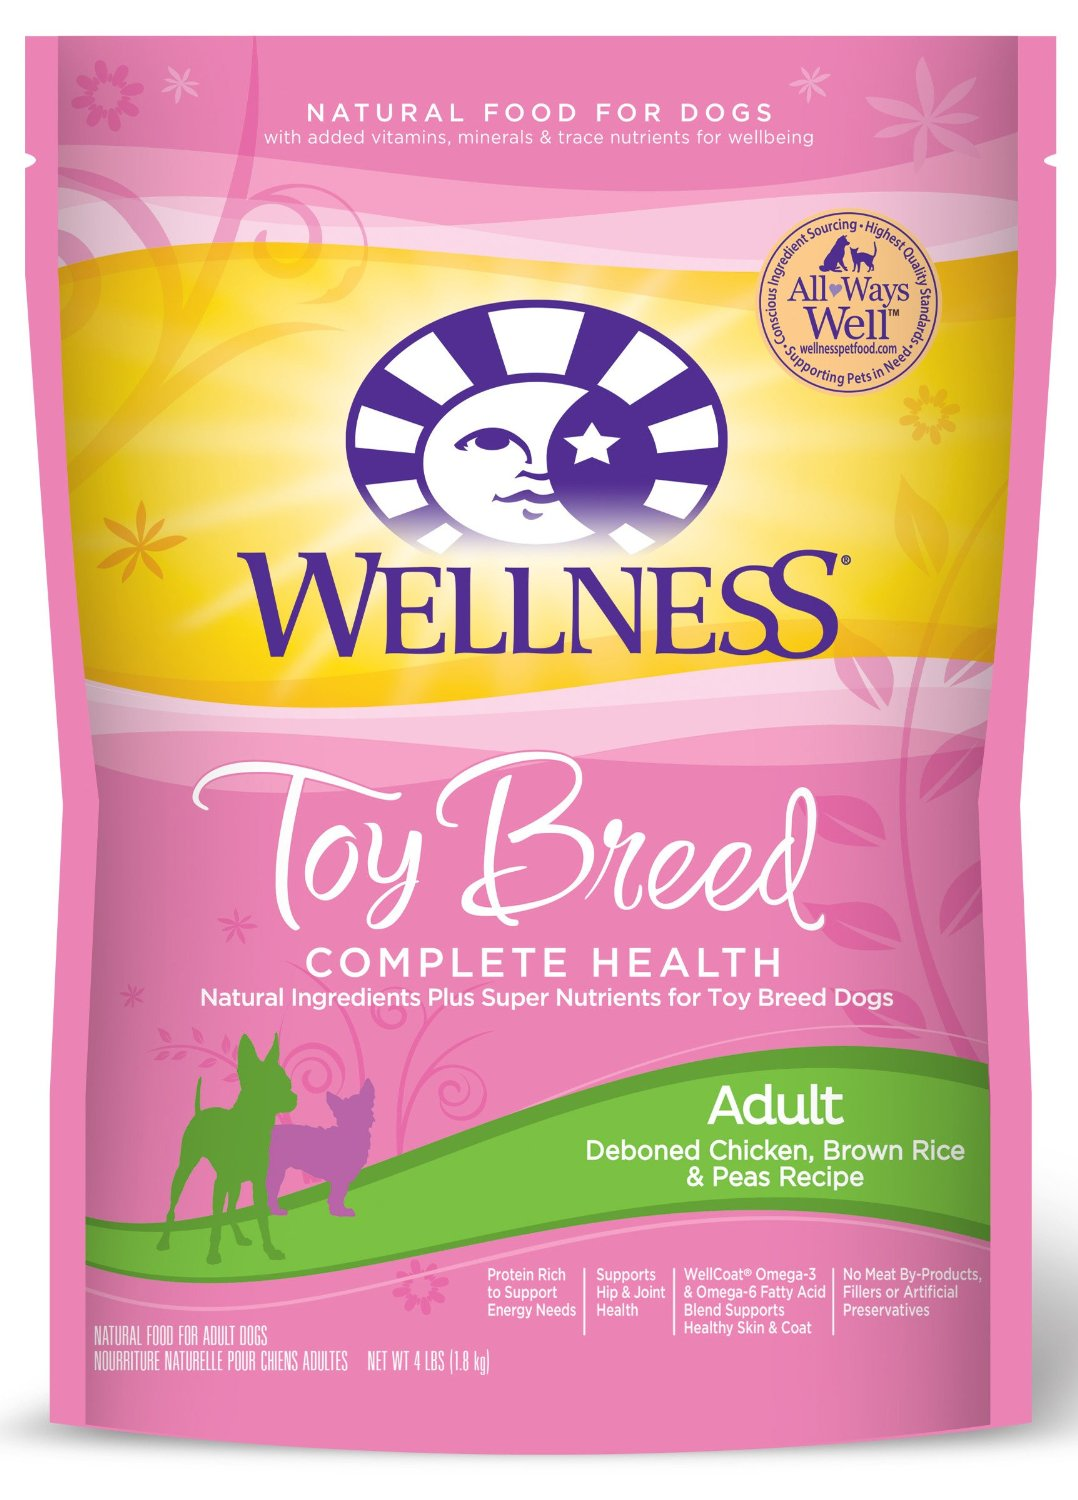 Charming Stomach Issues Small Dogs Small Dogs Canada Dog Food Wellness Complete Health Dry Dog Food Small Toy Breed Ken Brown Rice Peas Recipe 4 Pound Bag Dog Food bark post Best Dog Food For Small Dogs